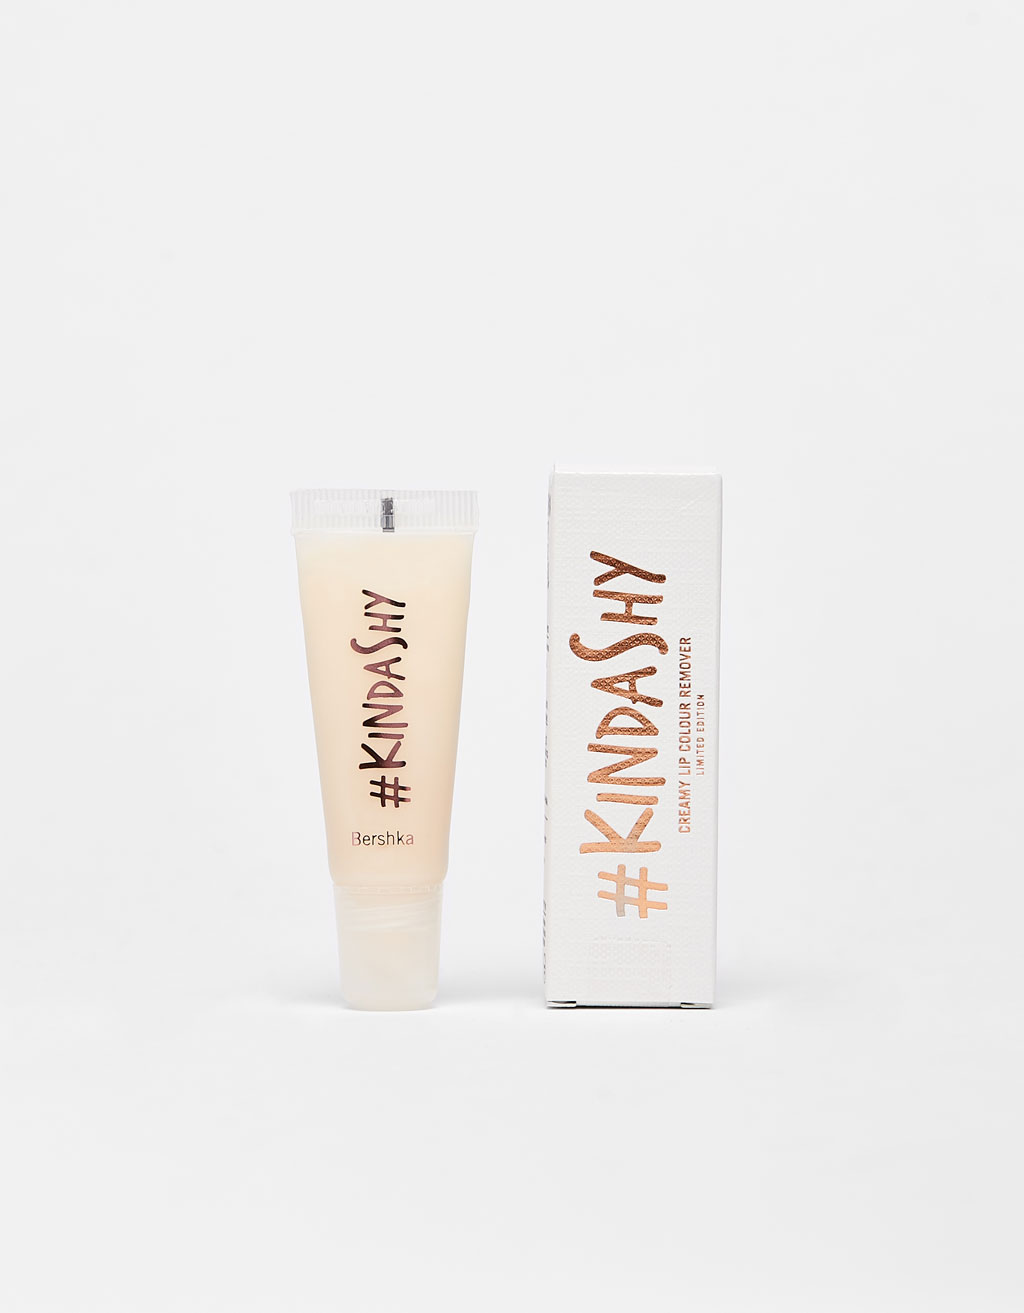 (P2) BERSHKA LIP COLOUR REMOVER KINDASHY 9G